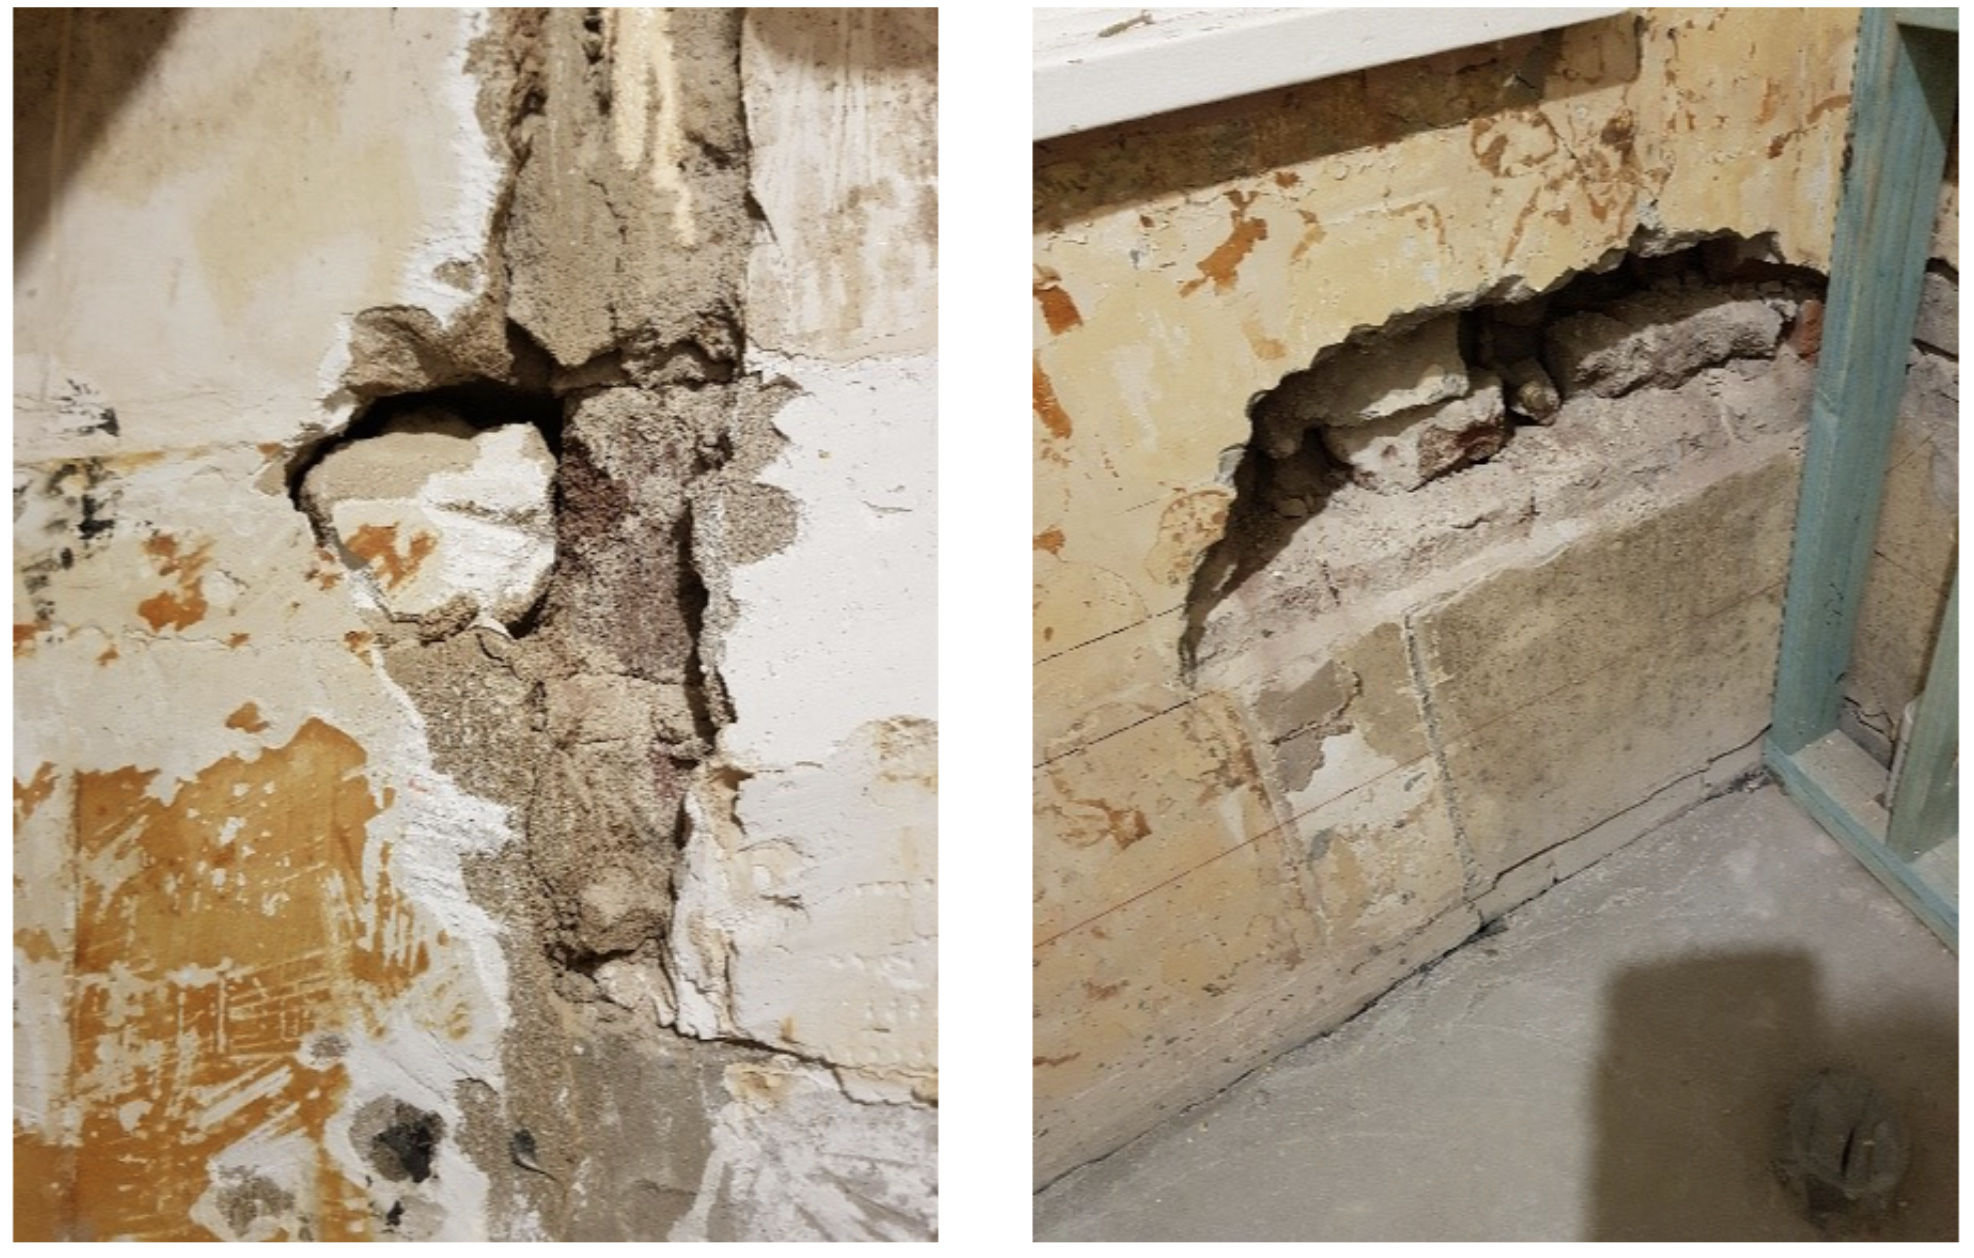 journey-home-interiors-forrest-demolition-1930s-bathroom-renovation-crumbling-wall-found-during-tile-removal